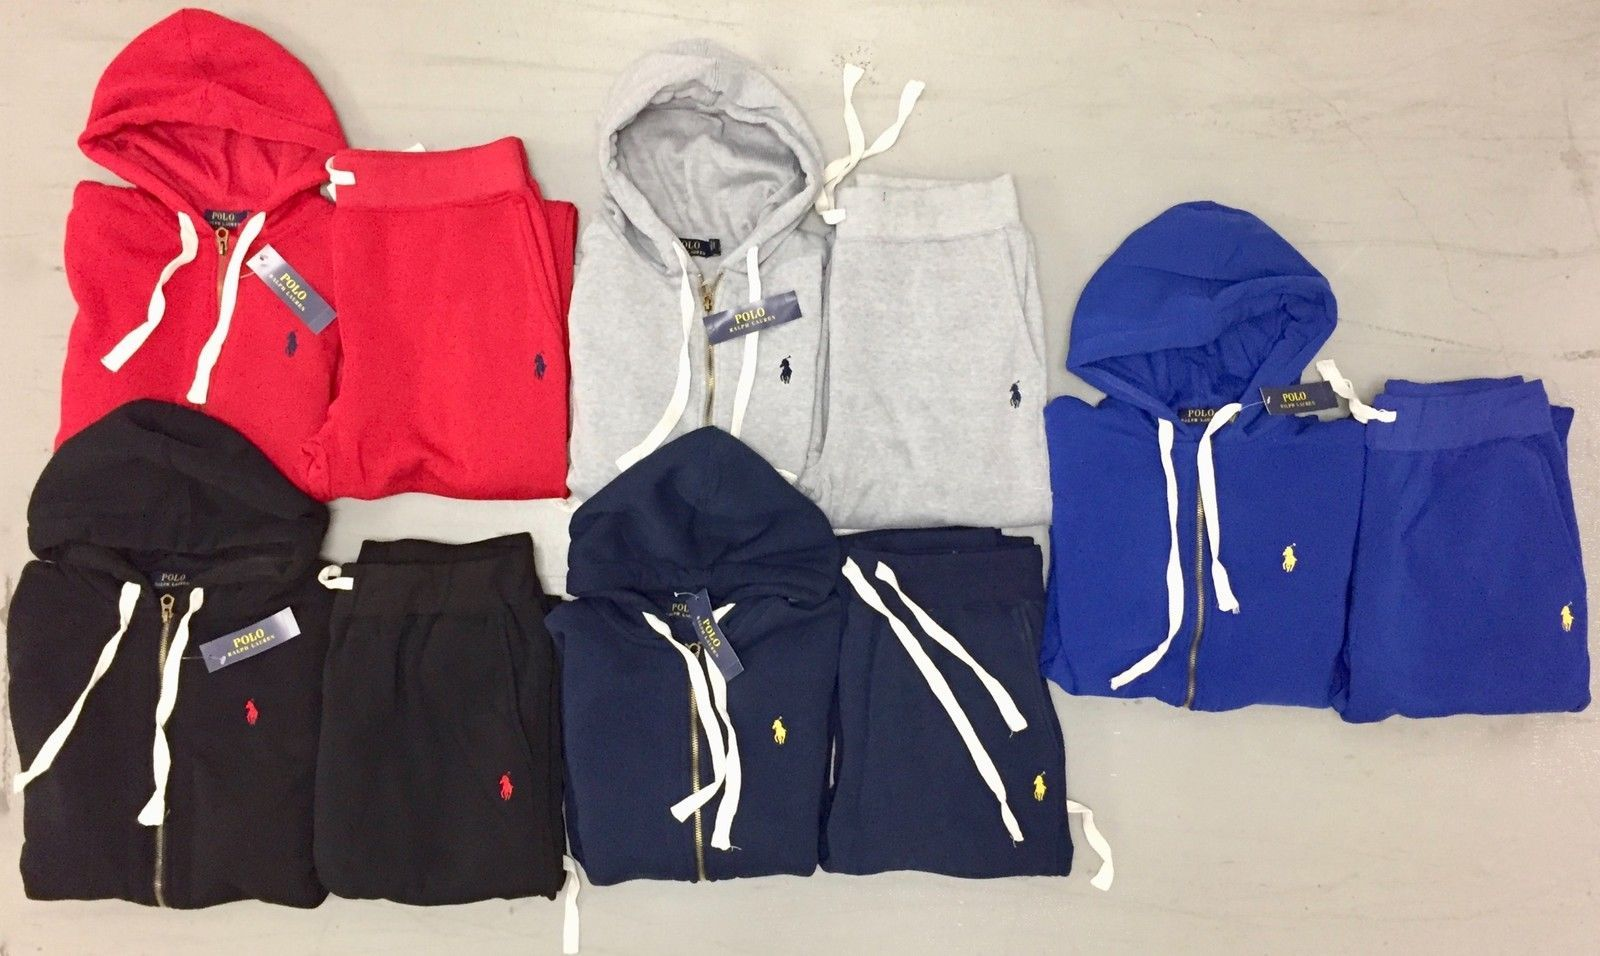 c8930f1a9033 NEW POLO RALPH LAUREN MENS SWEAT SUIT COMPLETE SET JOGGING SUIT FREE  SHIPPING